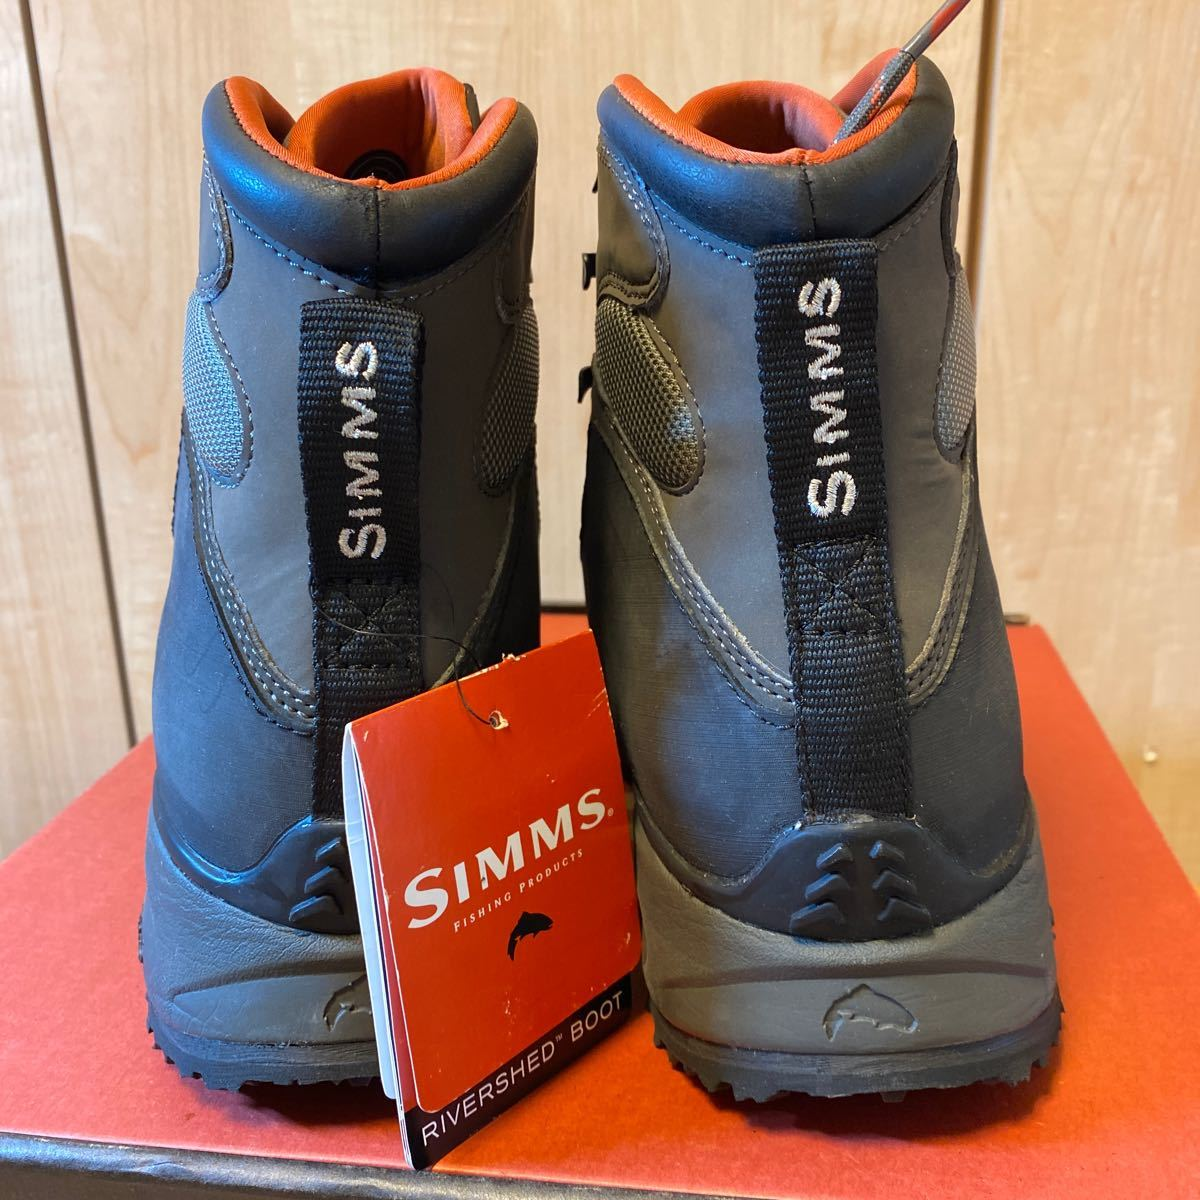 Simms Rivershed Boots size 9 シムス リバーシェッド・ブーツ_画像8